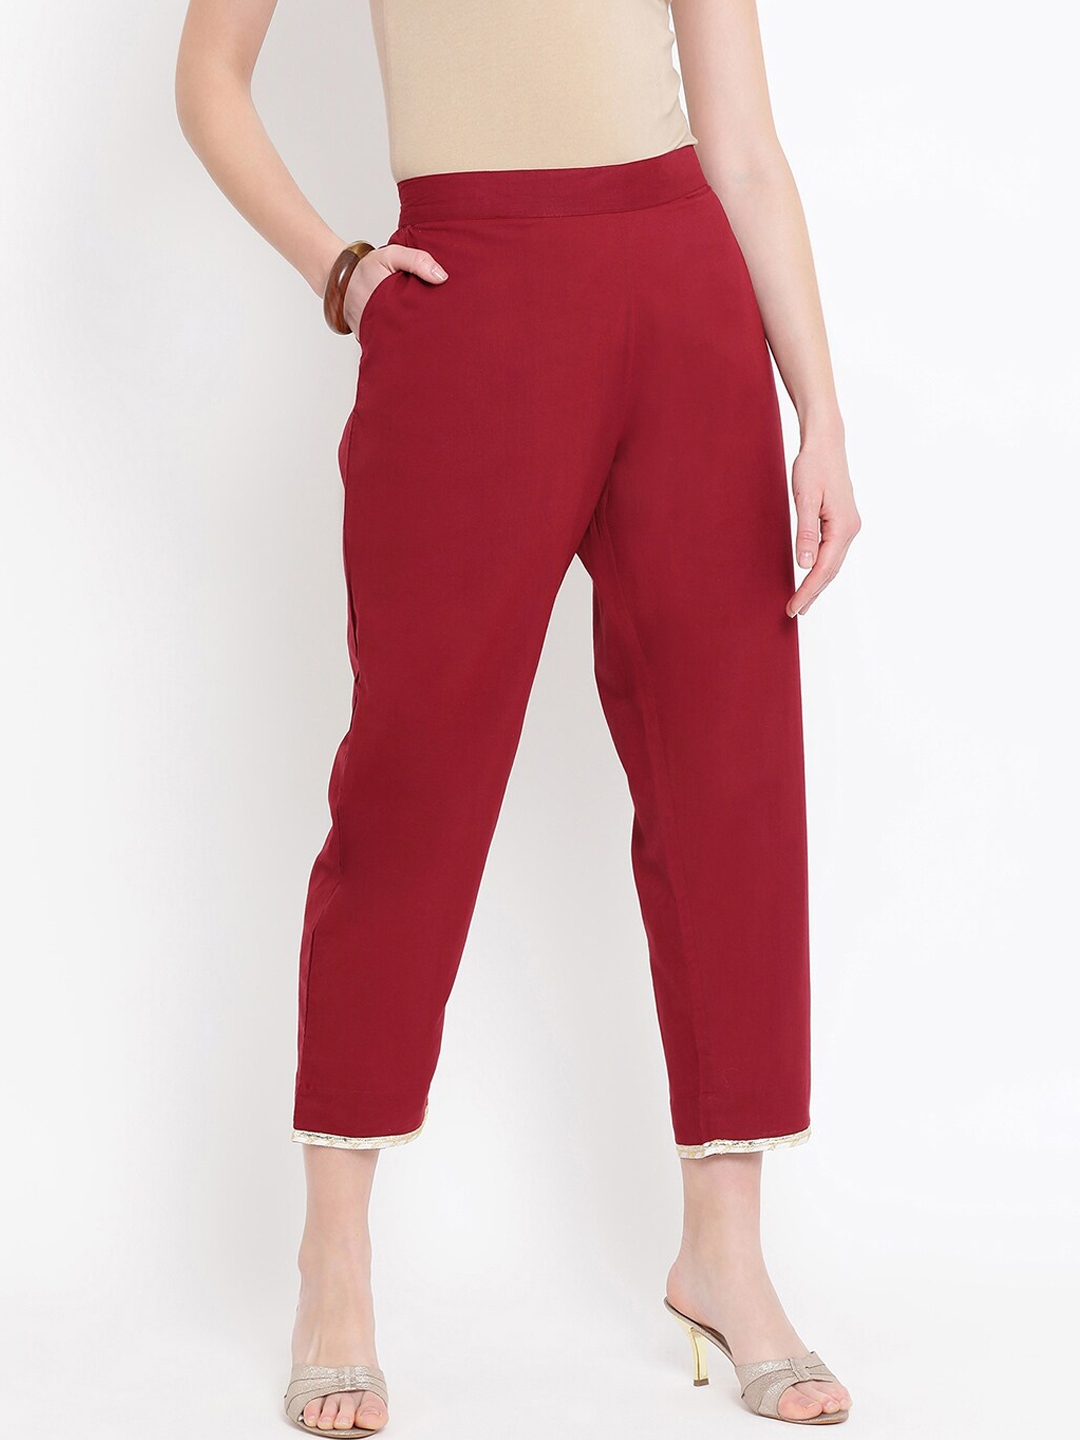 FABNEST Women Maroon   Gold Relaxed Fit Solid Regular Trousers